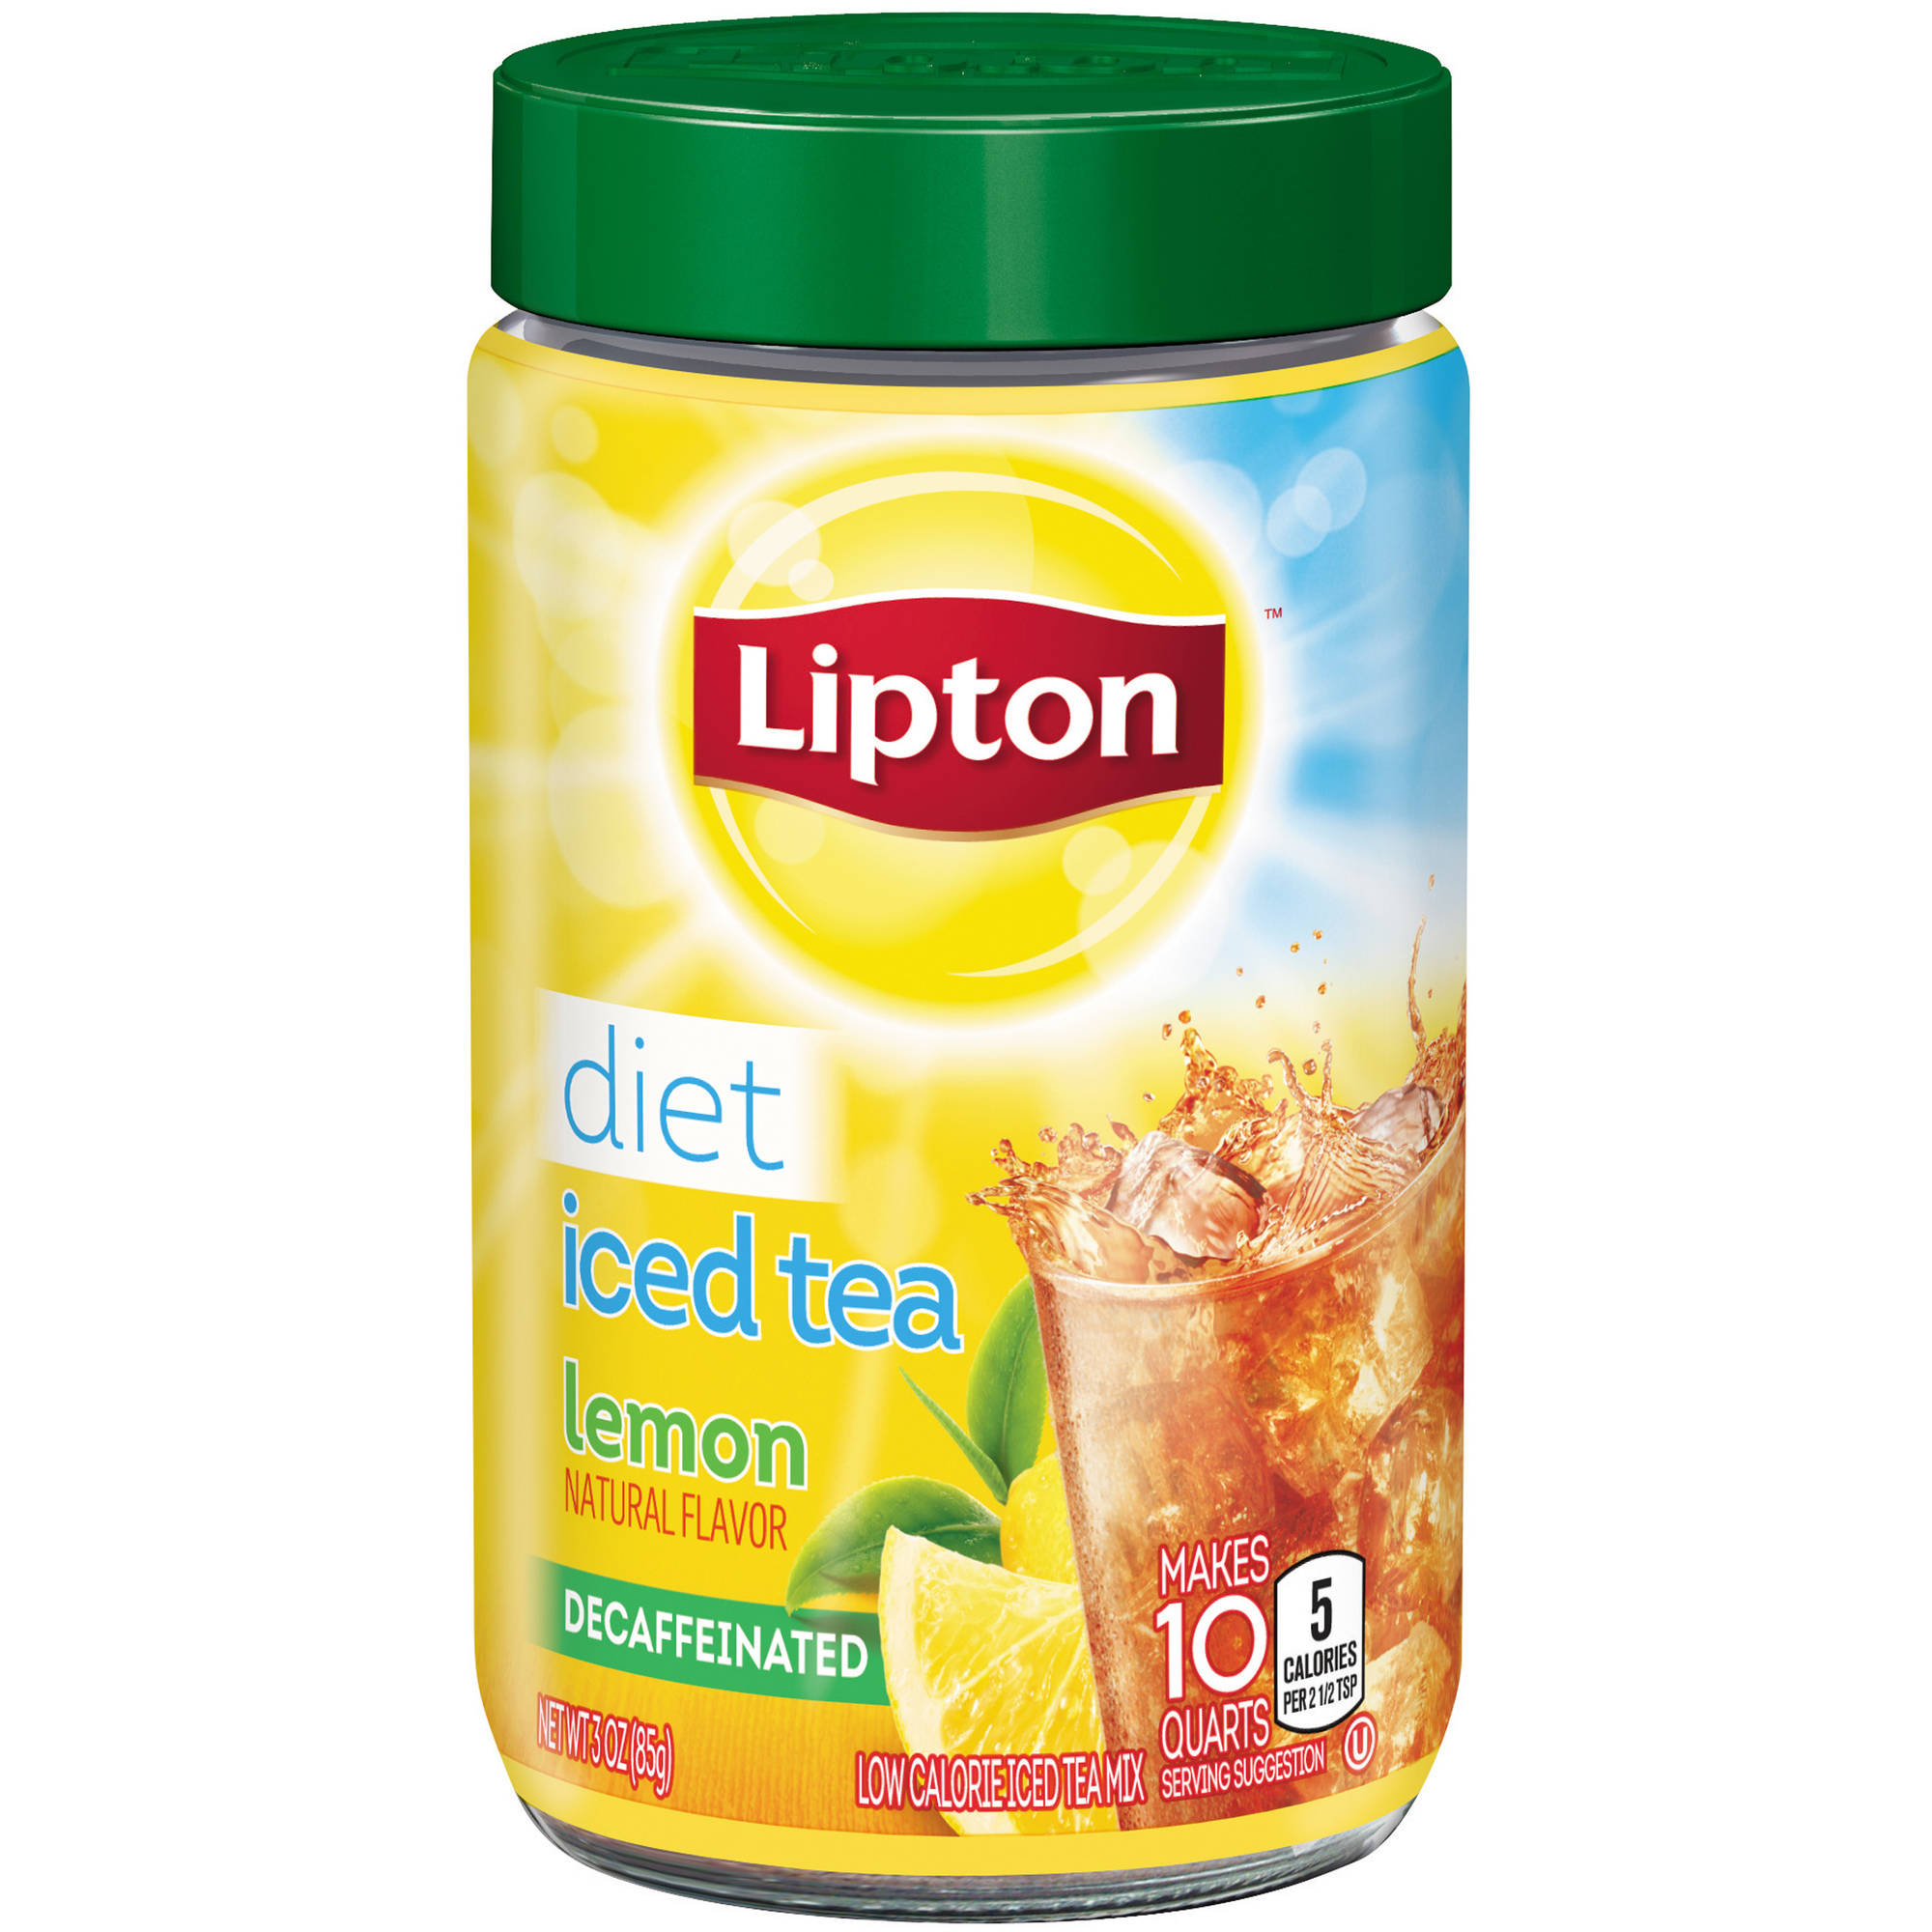 Lipton Diet Decaffeinated Lemon Iced Tea Mix, 10 qt